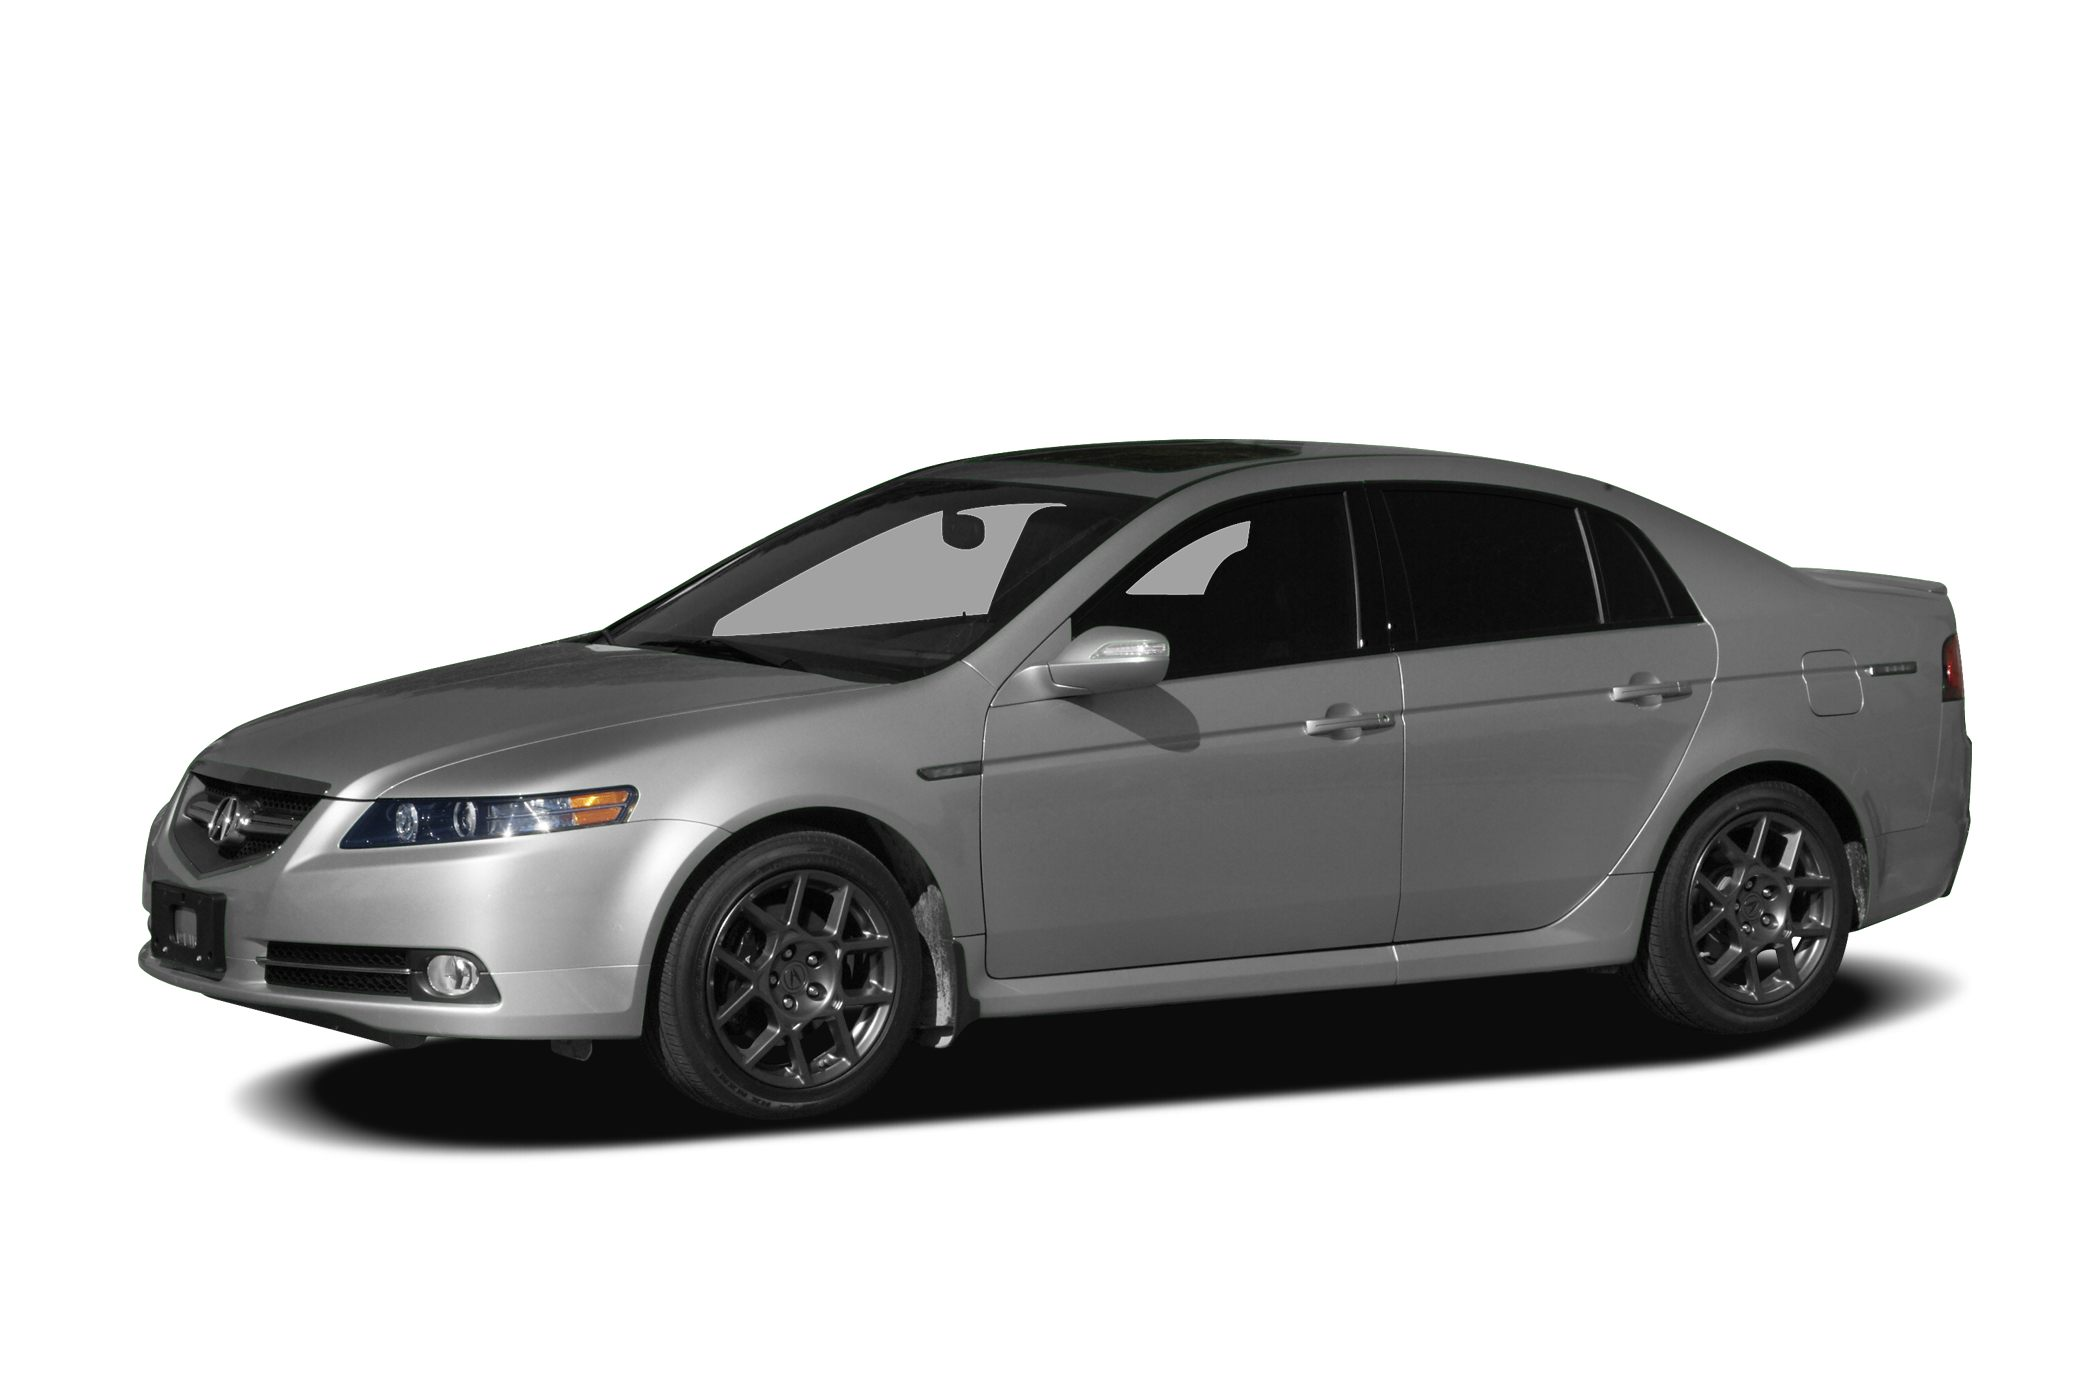 Acura TL Specs And Prices - 2000 acura tl transmission price